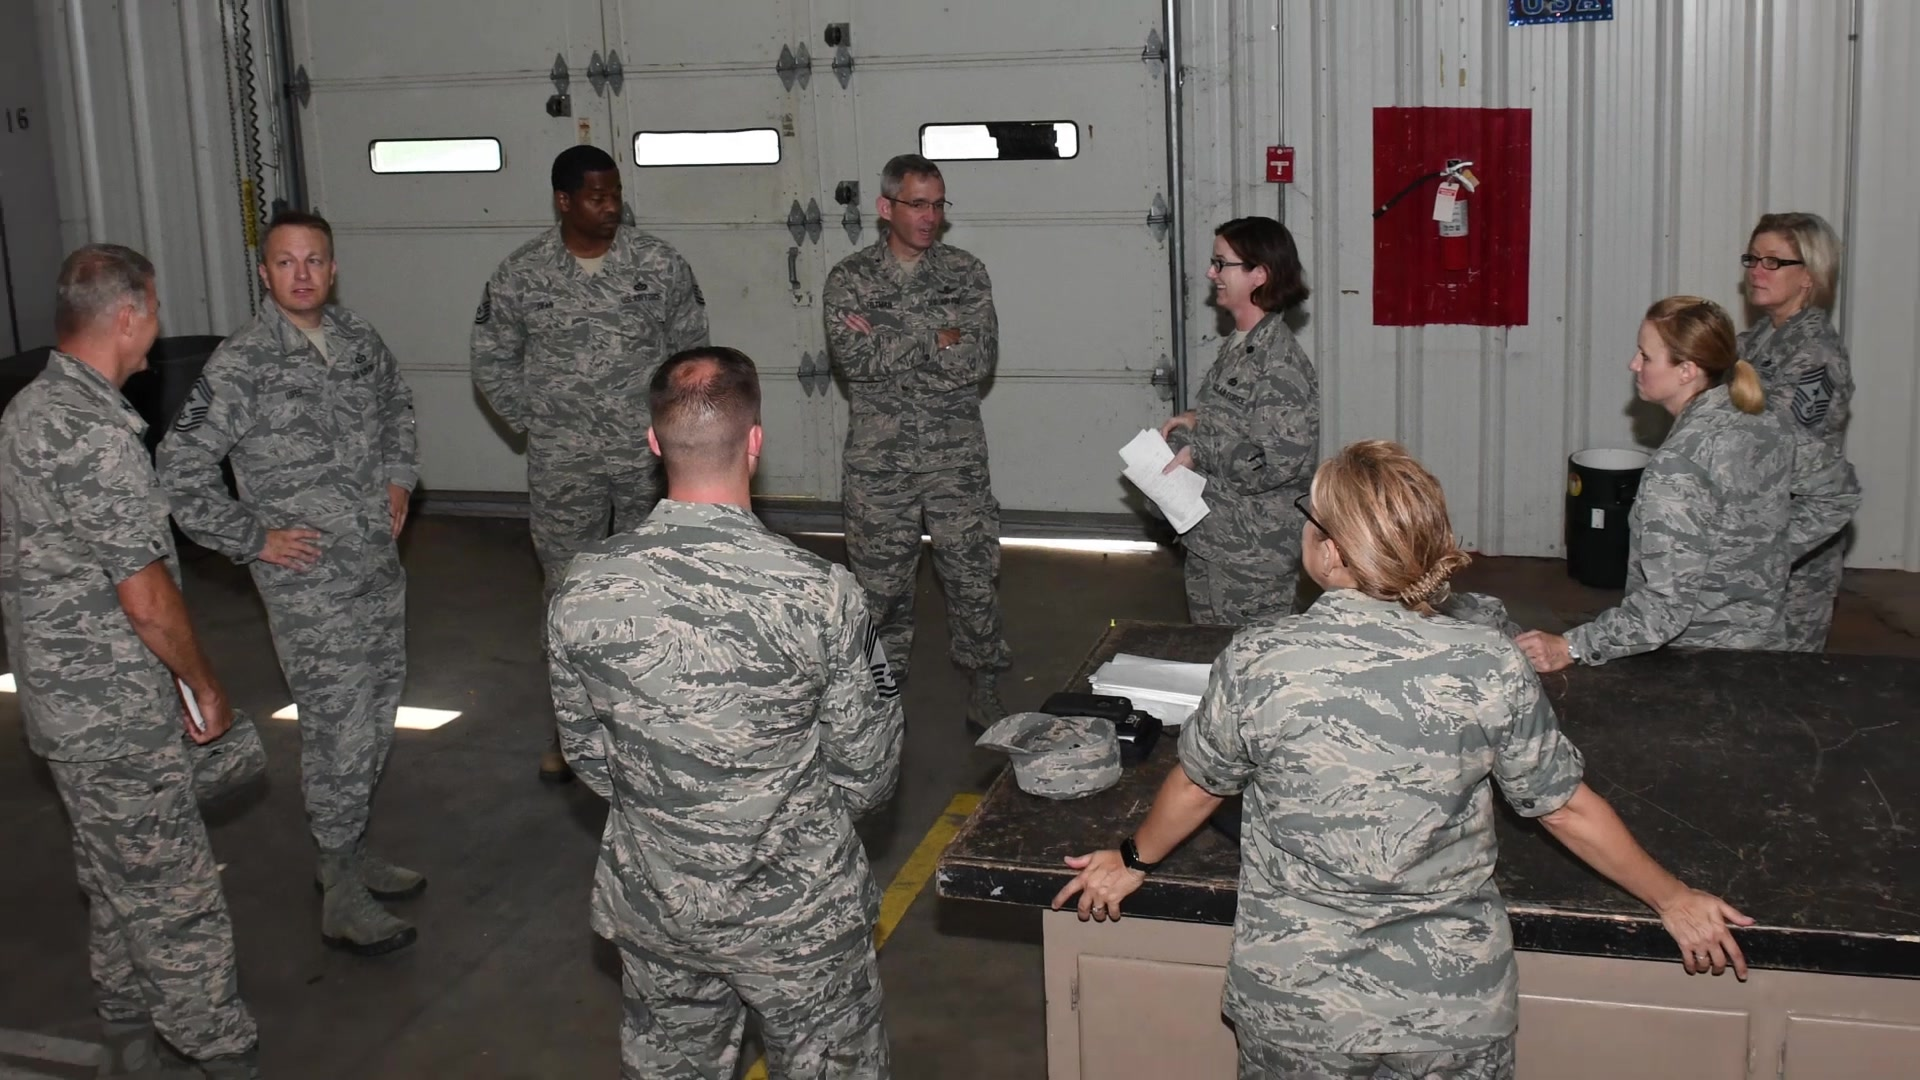 """In the October Commentary, Colonel Jeffrey Barnett, Tenth Air Force Deputy A-4 Director, discusses the Commander Directed Compliance Assessment program.   The purpose of the CDCA is to educate, mentor, and train, to ensure our units are performing at maximum efficiency and complying with technical data and regulatory guidance.   The CDCA is a non-graded assessment that examines how well personnel perform their jobs, follow regulations and technical orders, complete documentation, and train personnel.  The main objective of a CDCA is to provide leadership with a snap shot of how well maintenance, logistics, operations and personnel functions are being performed.   The compliance team will work closely with the units to help individuals improve their job knowledge and skills. Additionally, they will provide best practices from other units to help standardize processes throughout Tenth Air Force.  The CDCA is an external assessment of how our units are performing, and they provide validation of internal processes.   The results inform unit commanders as well as the Tenth Air Force Commander whether unit functions are being performed efficiently, effectively, and in compliance with directives.  After each assessment units are given a summary report of the observations noted by the team at an out brief at the host location. The final report is sent to the unit commander within 30 days.   The CDCA program is a way for Tenth Air Force Reserve Citizen Airmen to take care of each other and increase mission success. We will identify strengths and areas for improvement to ensure each of our units is performing to the best of their ability.   By taking care of our units, we ensure Tenth Air Force is """"Always There"""""""